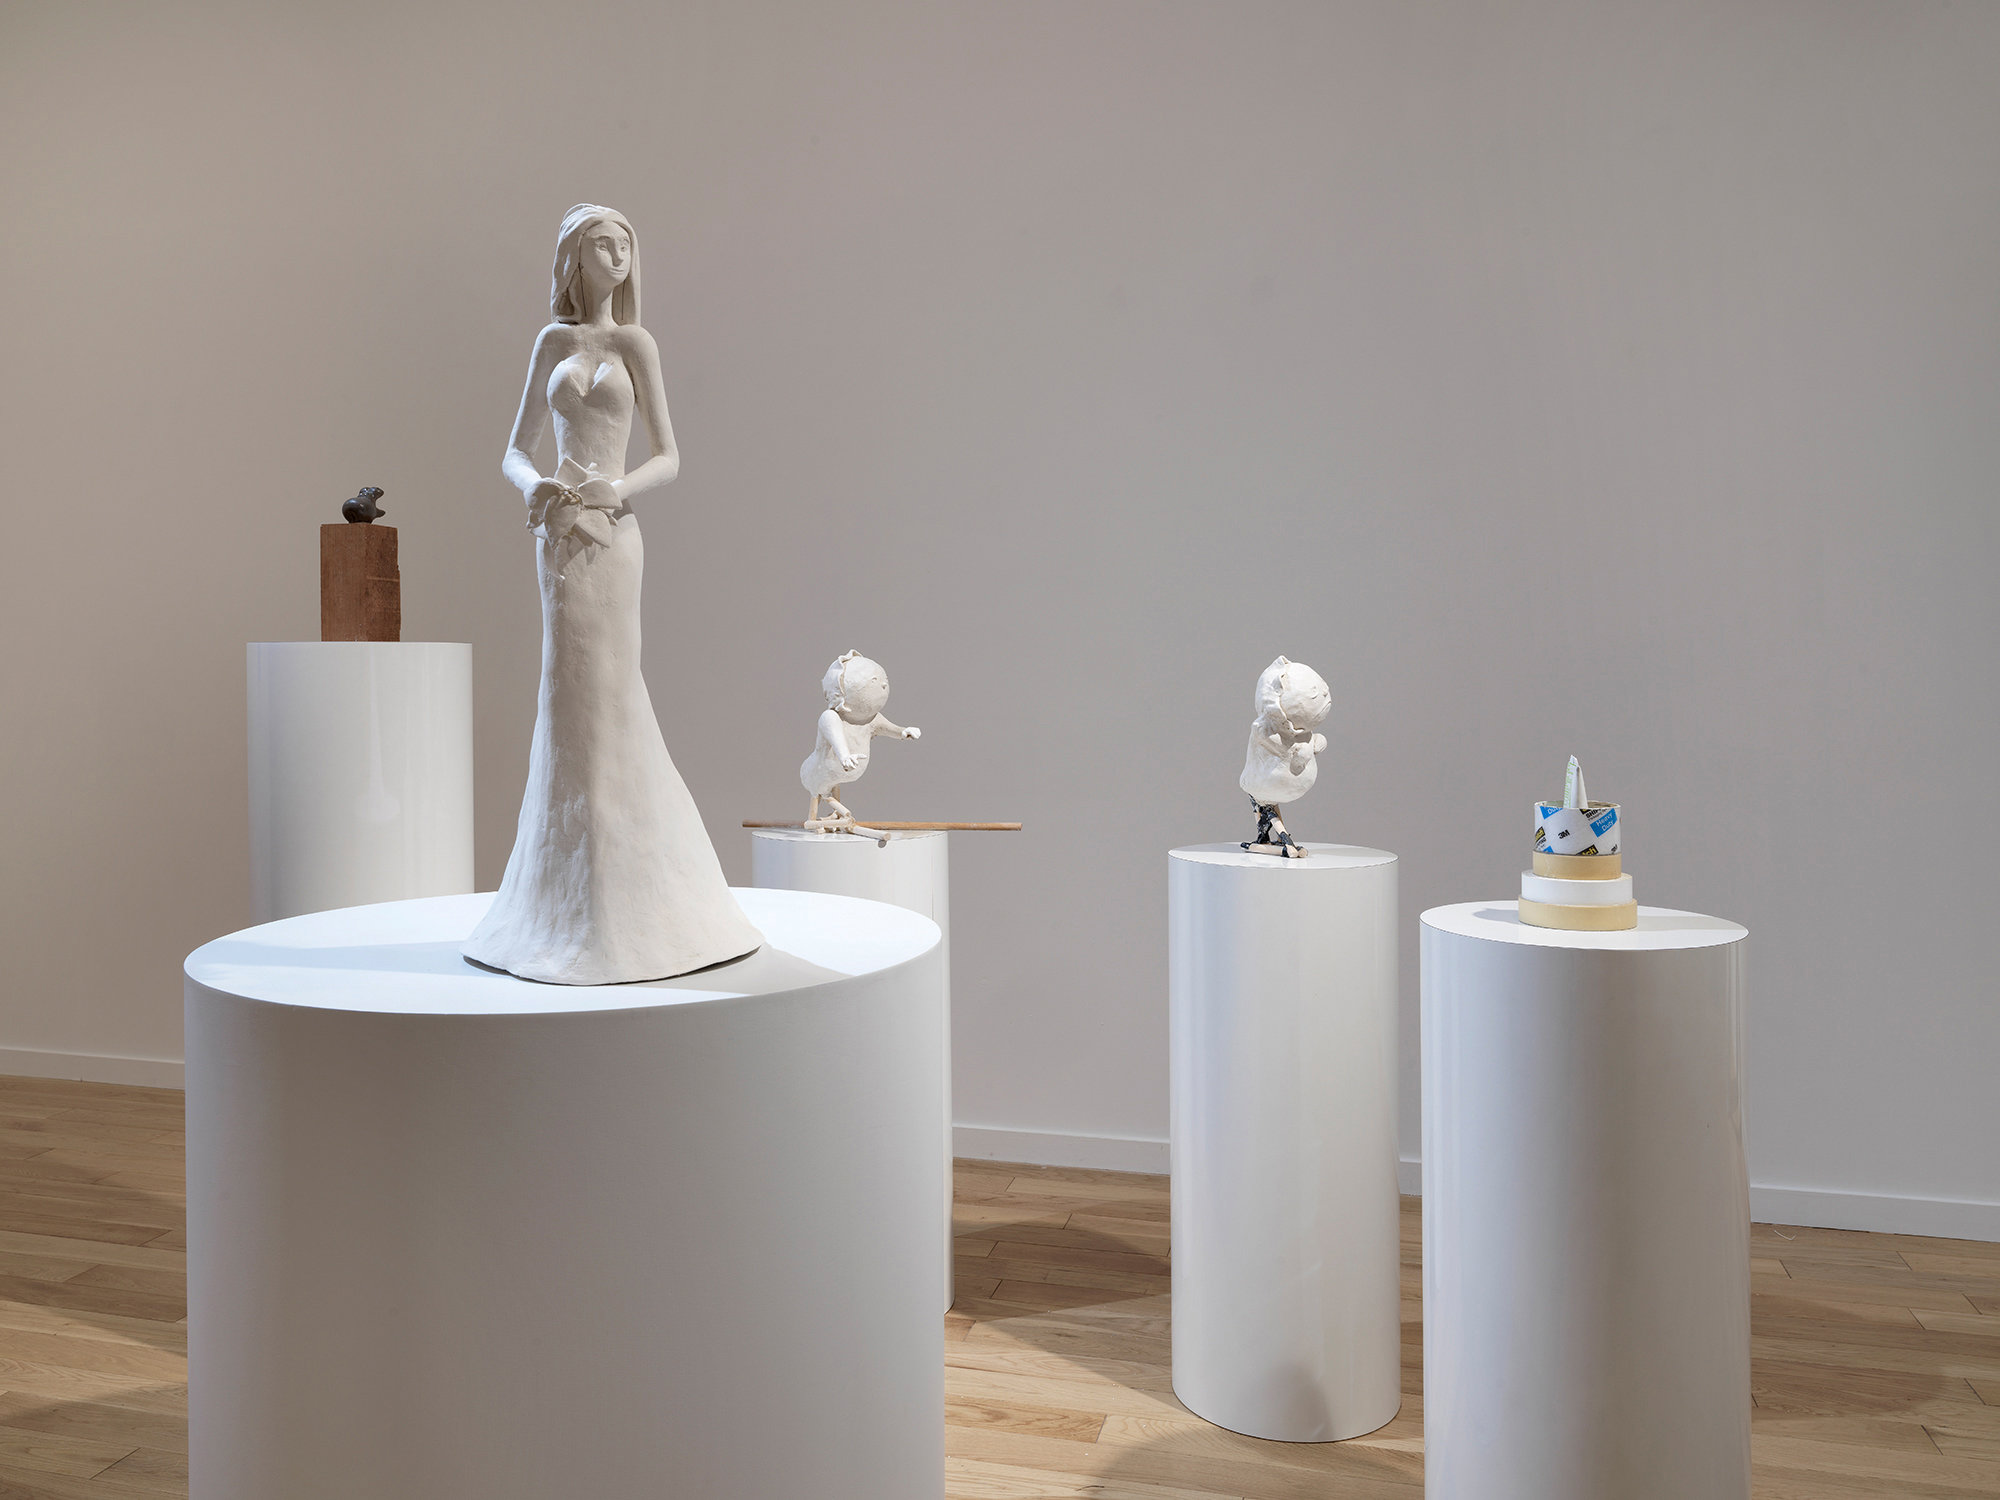 """Sam Anderson's installation at Chapter NY, from left: """"The King"""" (2016-18), wood and ceramic; """"Paula"""" (2018), papier-mâché wood and metal; """"Two Babies"""" (2018), papier-mâché, wood, glue and electric tape; and """"Sunrise"""" (2018), tape rolls, acrylic and sunscreen.CreditDario Lasagni, via Chapter NY"""